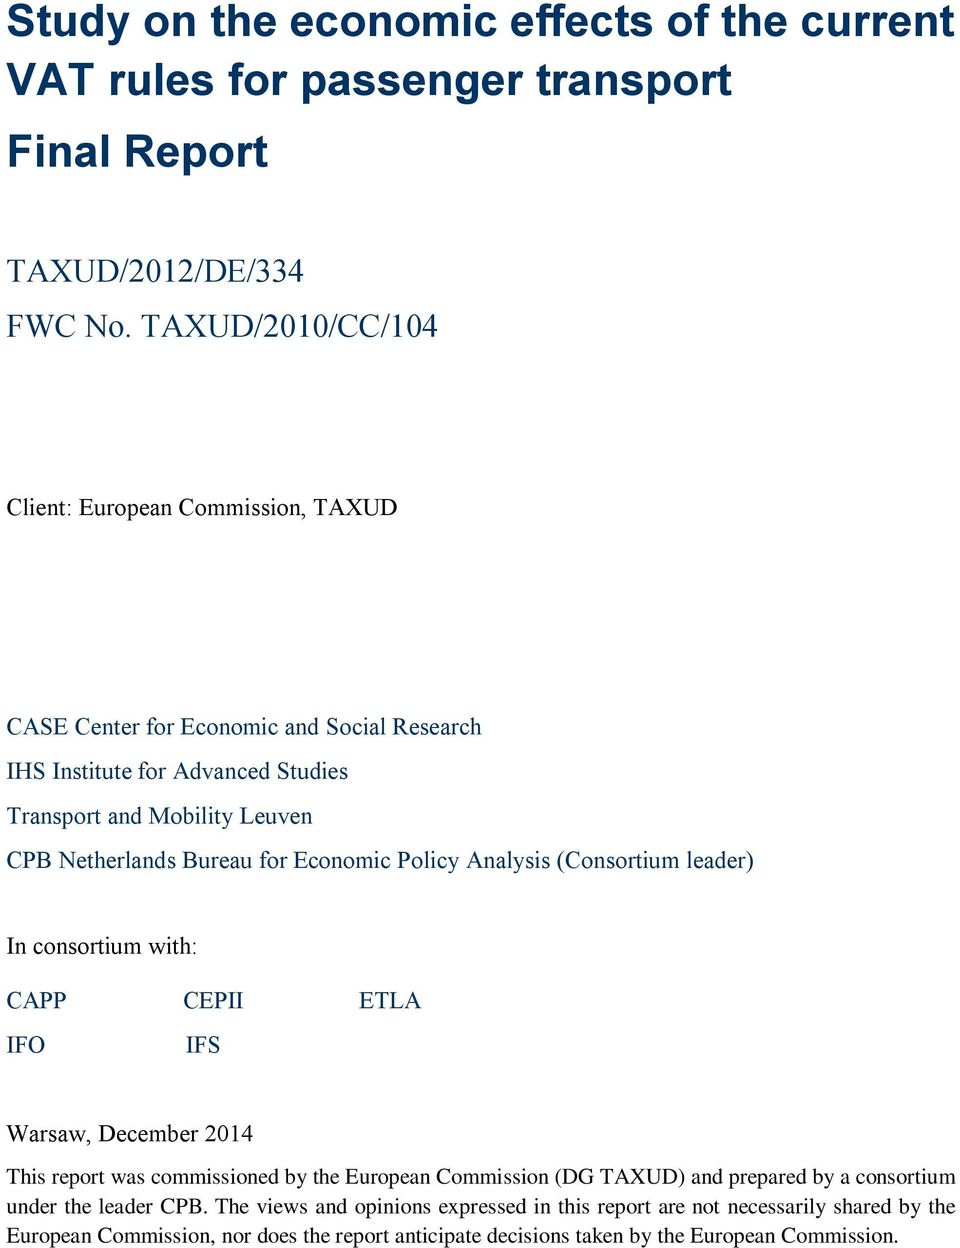 Bureau for Economic Policy Analysis (Consortium leader) In consortium with: CAPP CEPII ETLA IFO IFS Warsaw, December 2014 This report was commissioned by the European Commission